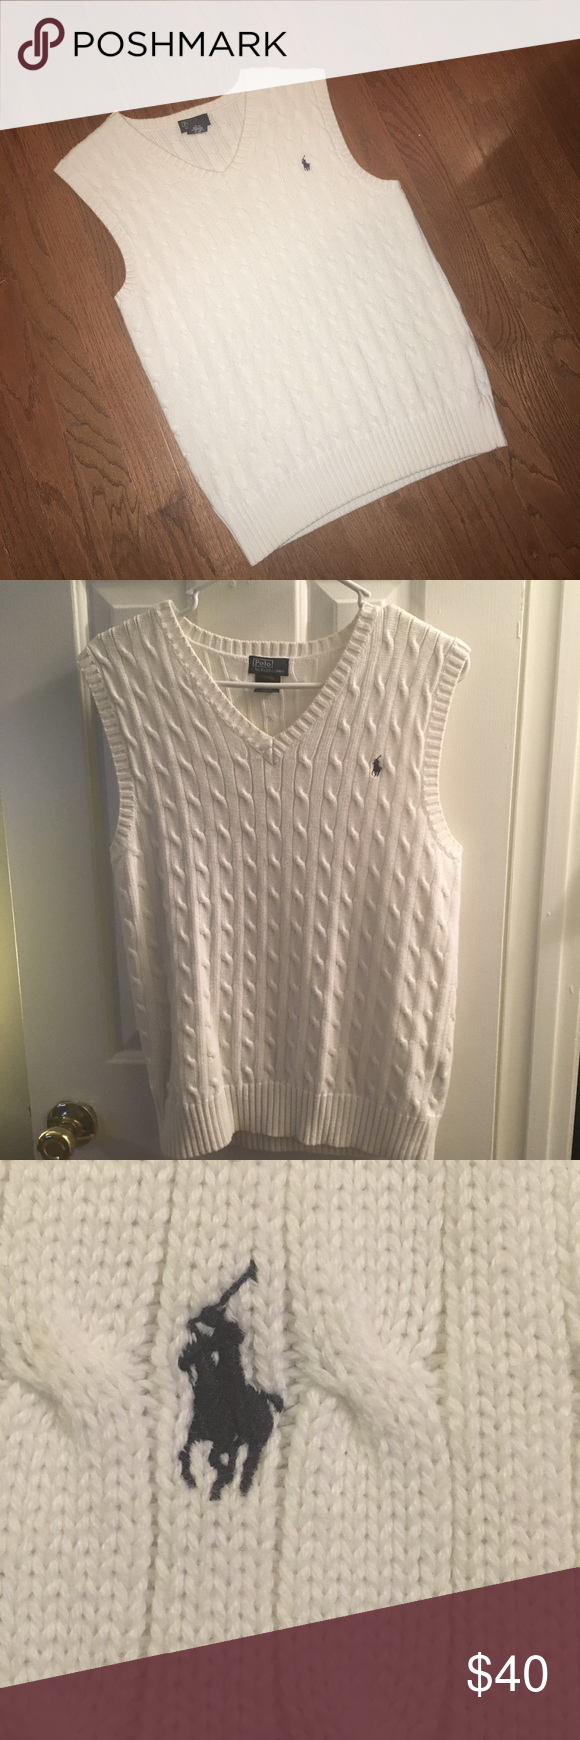 White Cable Lauren By Vest Knit Sweater Polo Ralph Nv8nwm0O